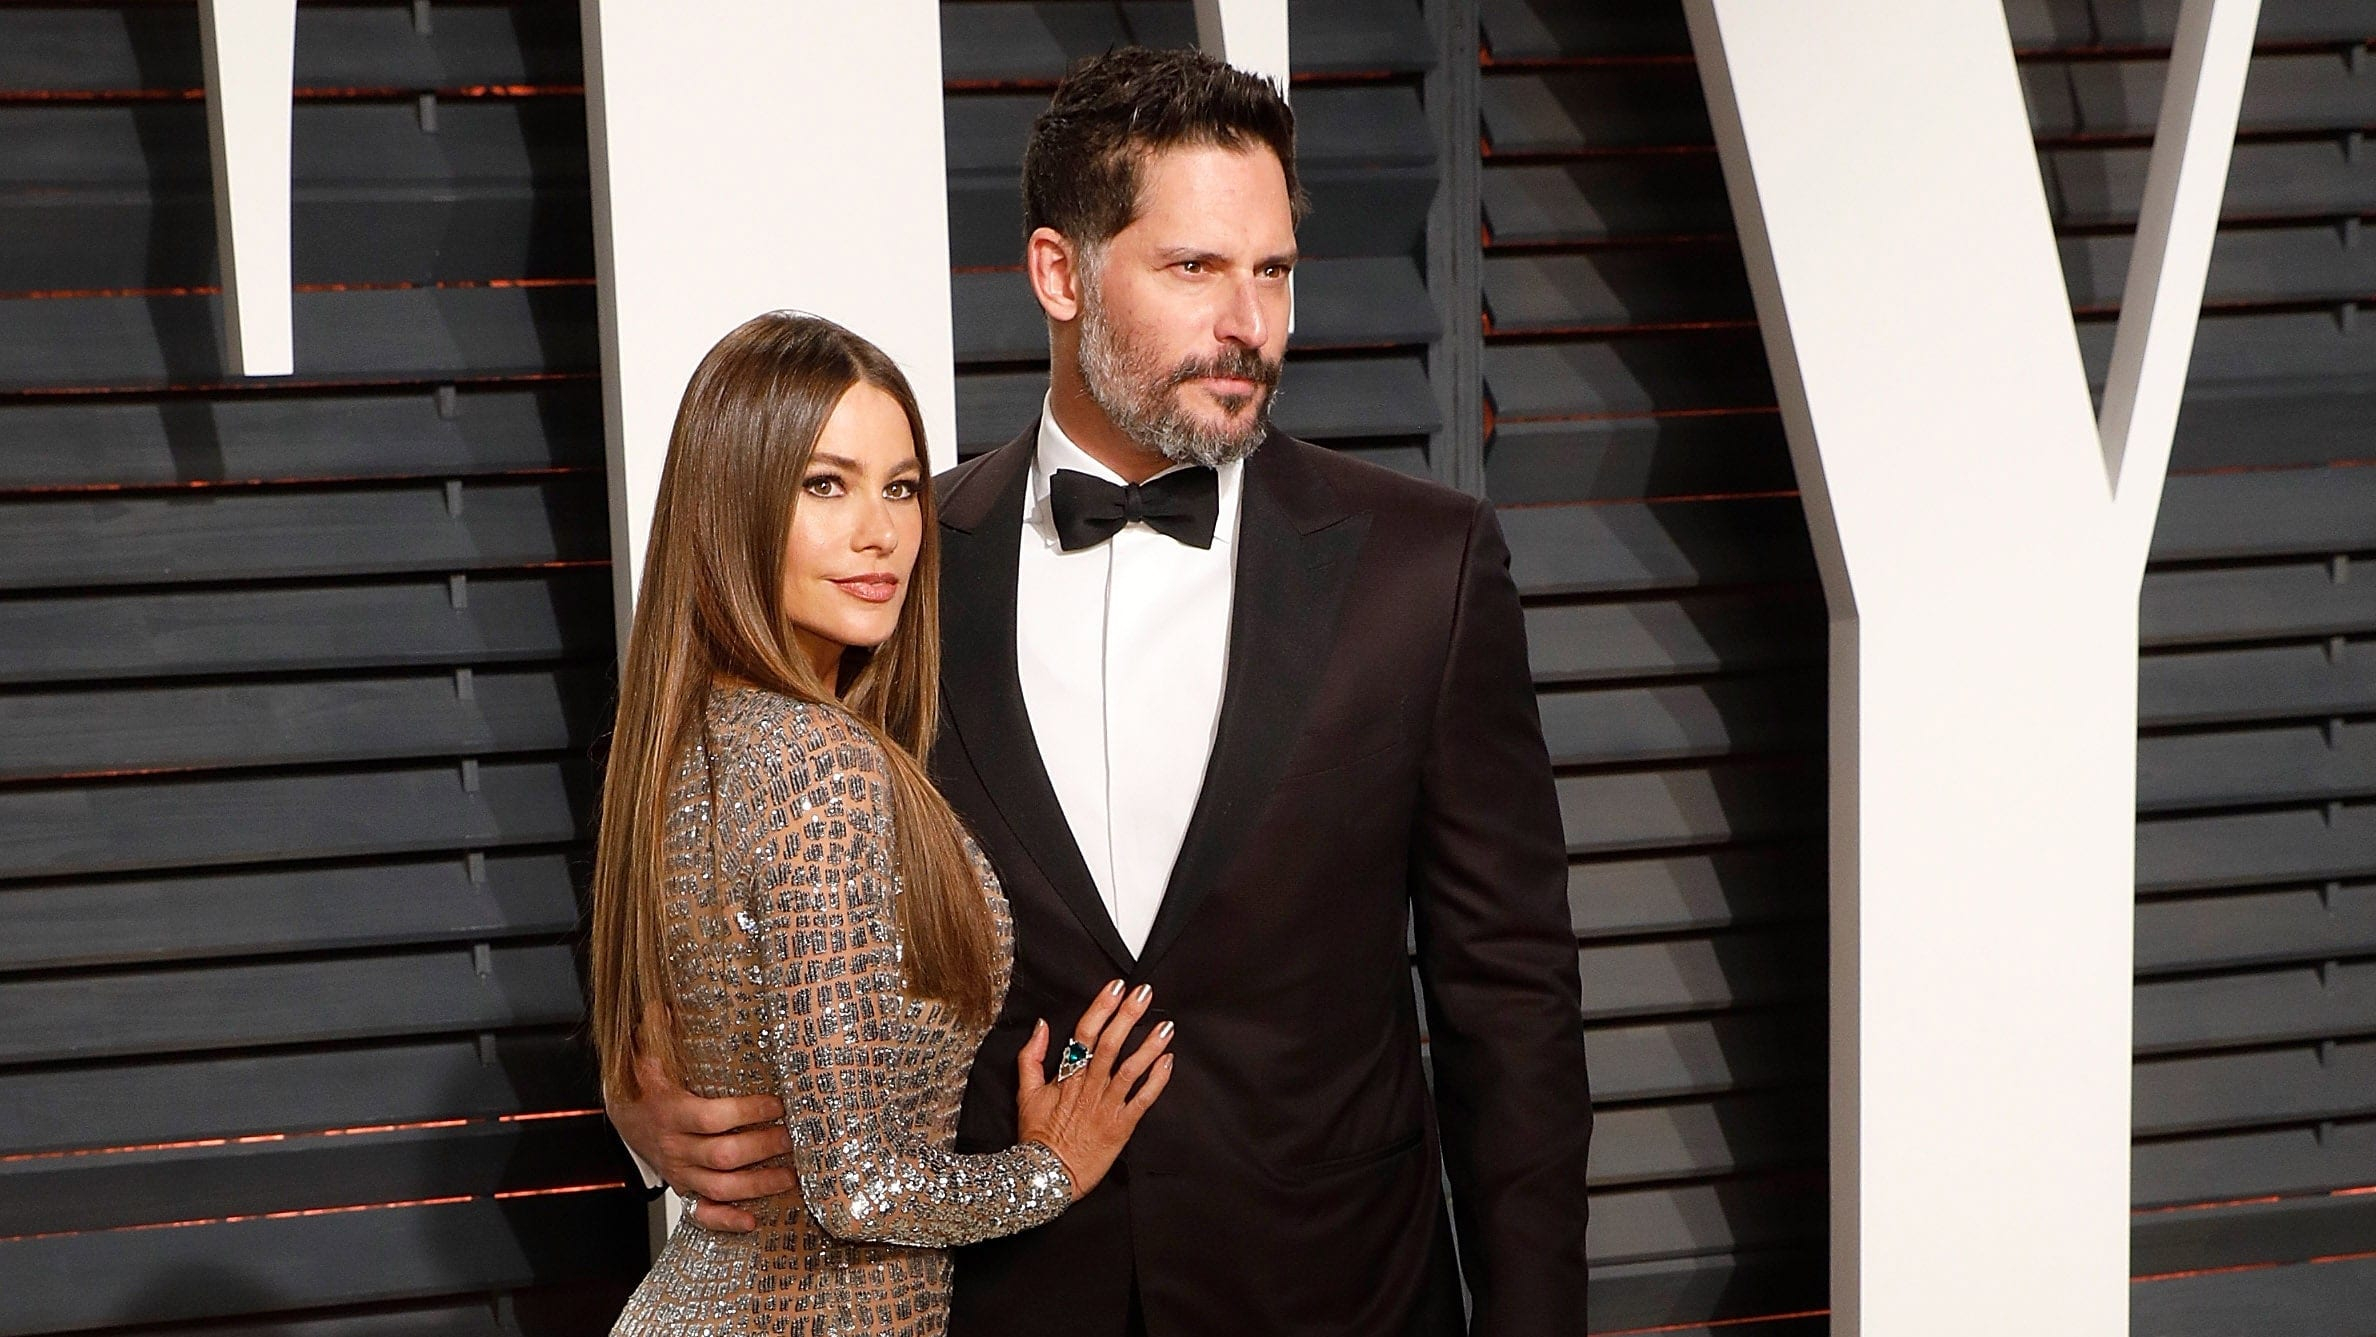 Who is Sofia Vergara dating in 2021?